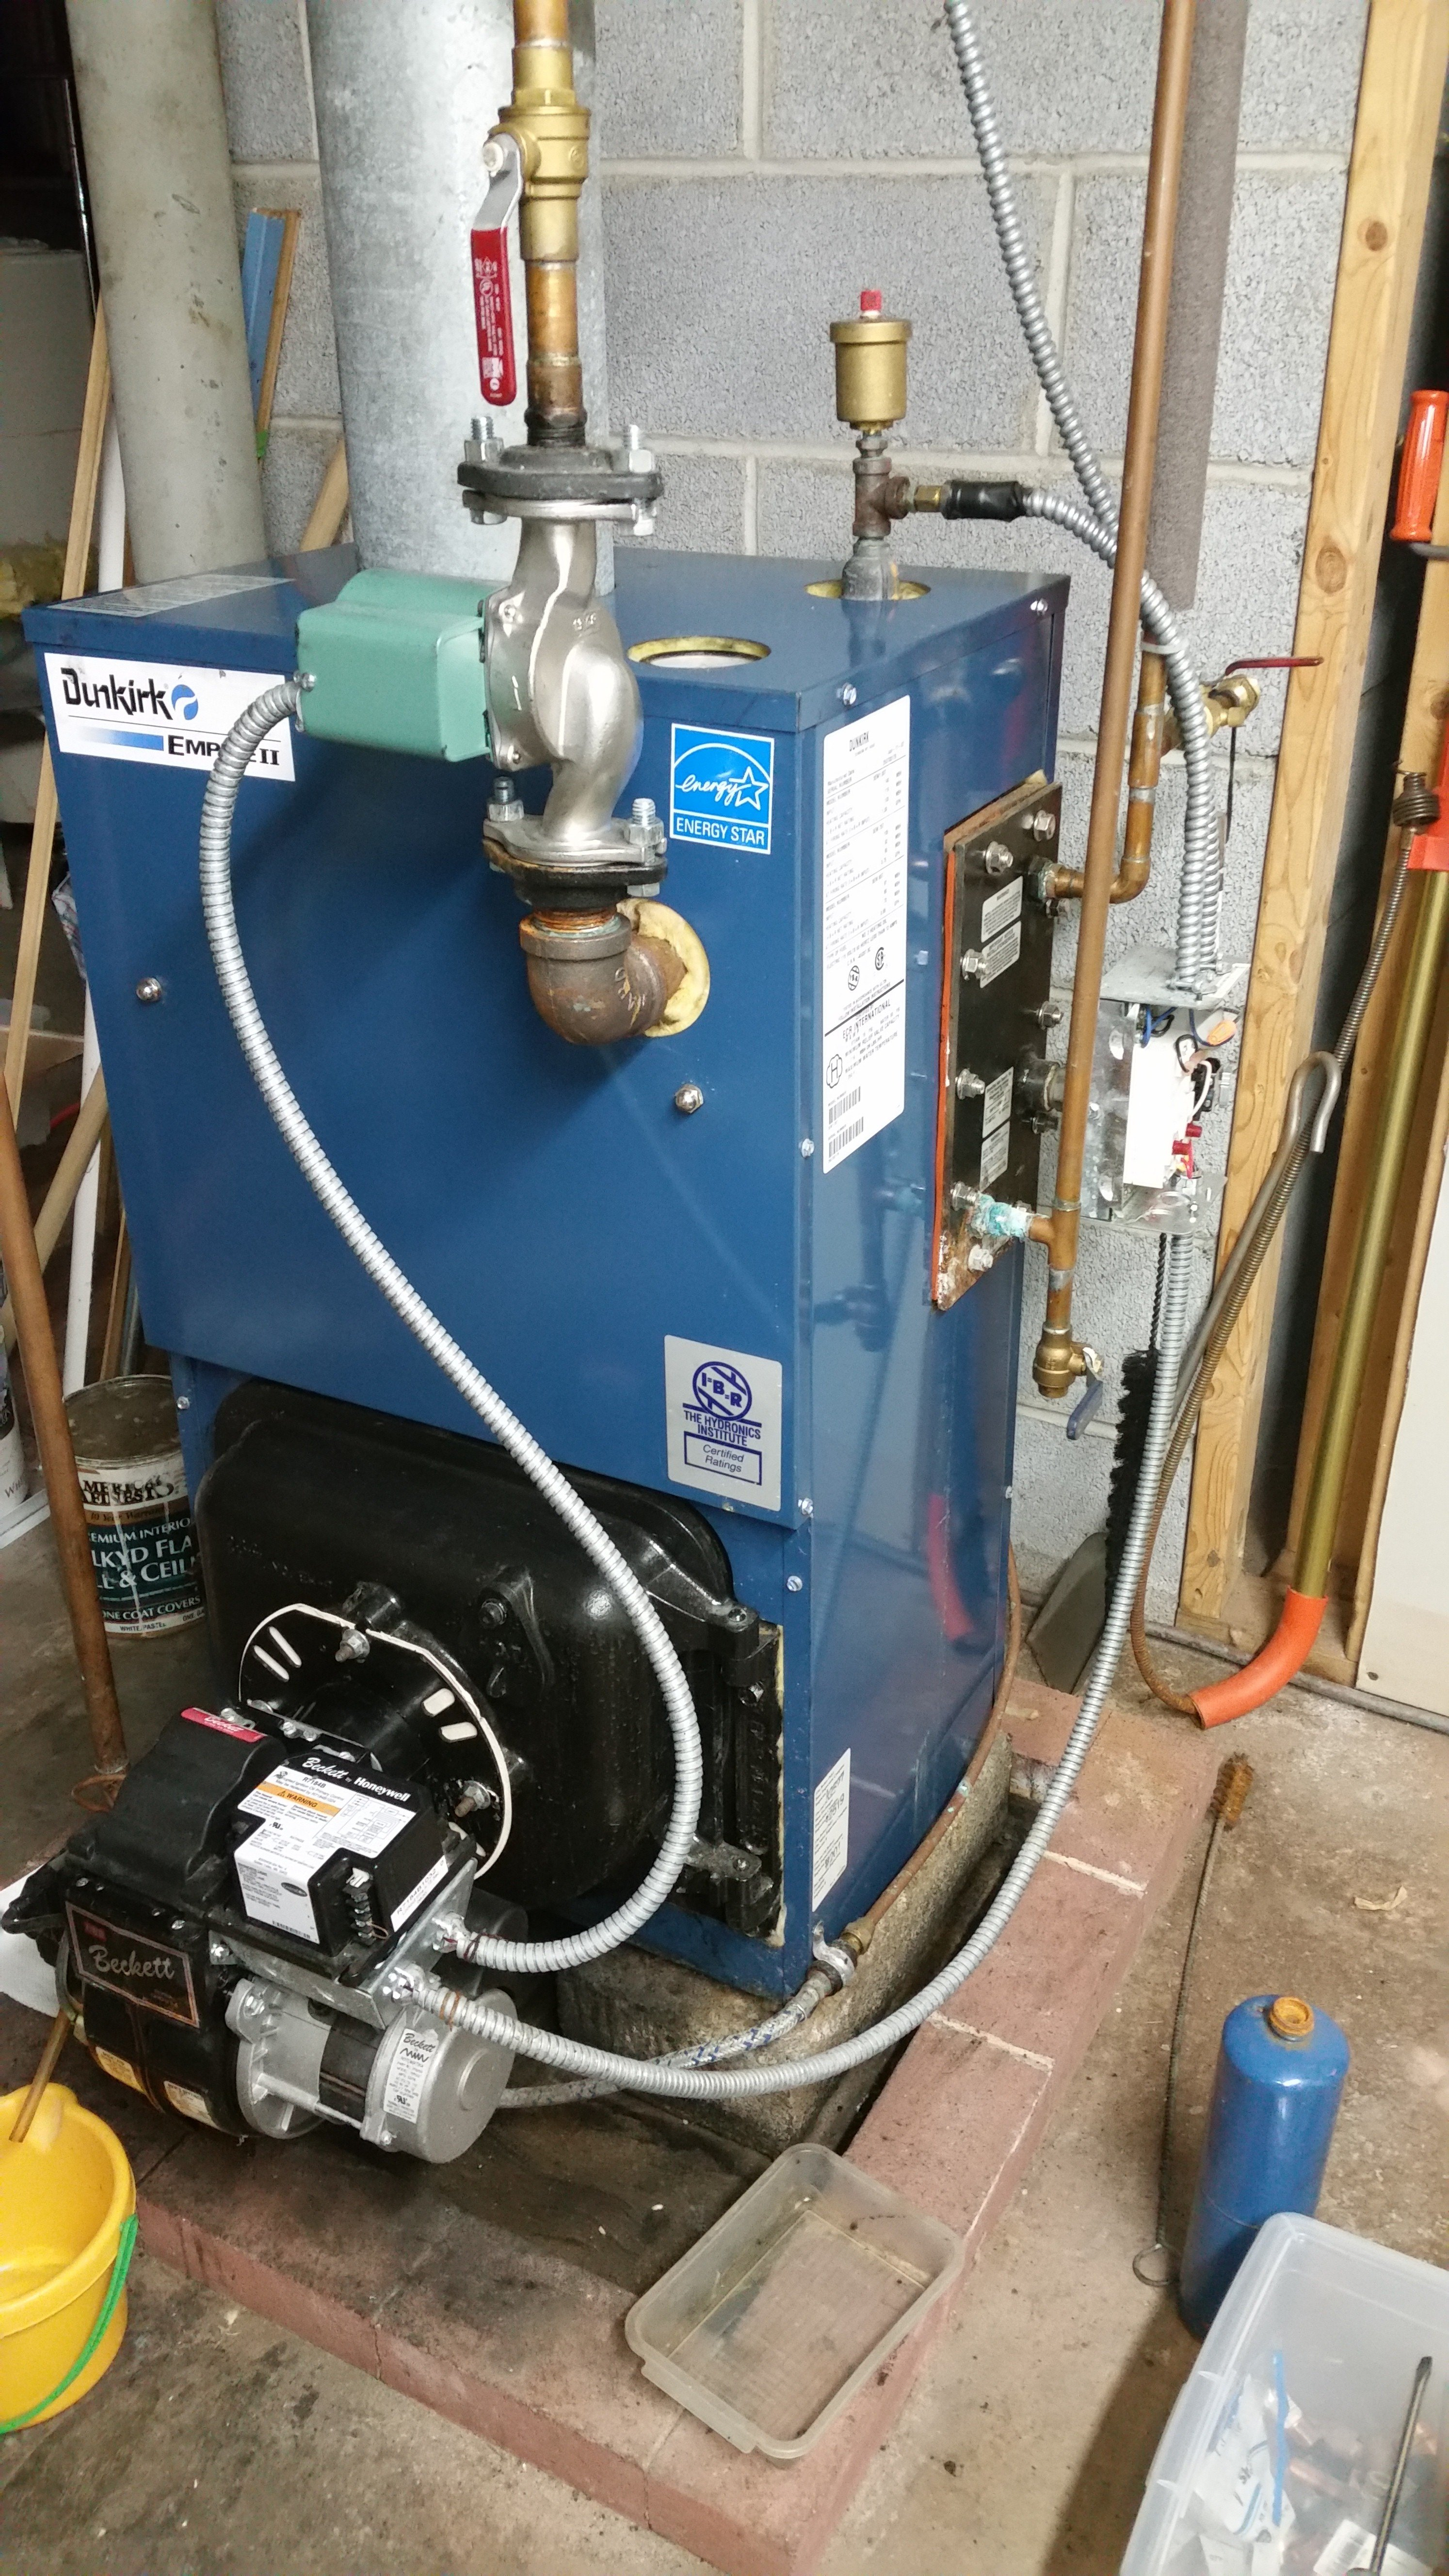 My oil boiler Dunkirk empire II with burner Beckett by Honeywell is ...